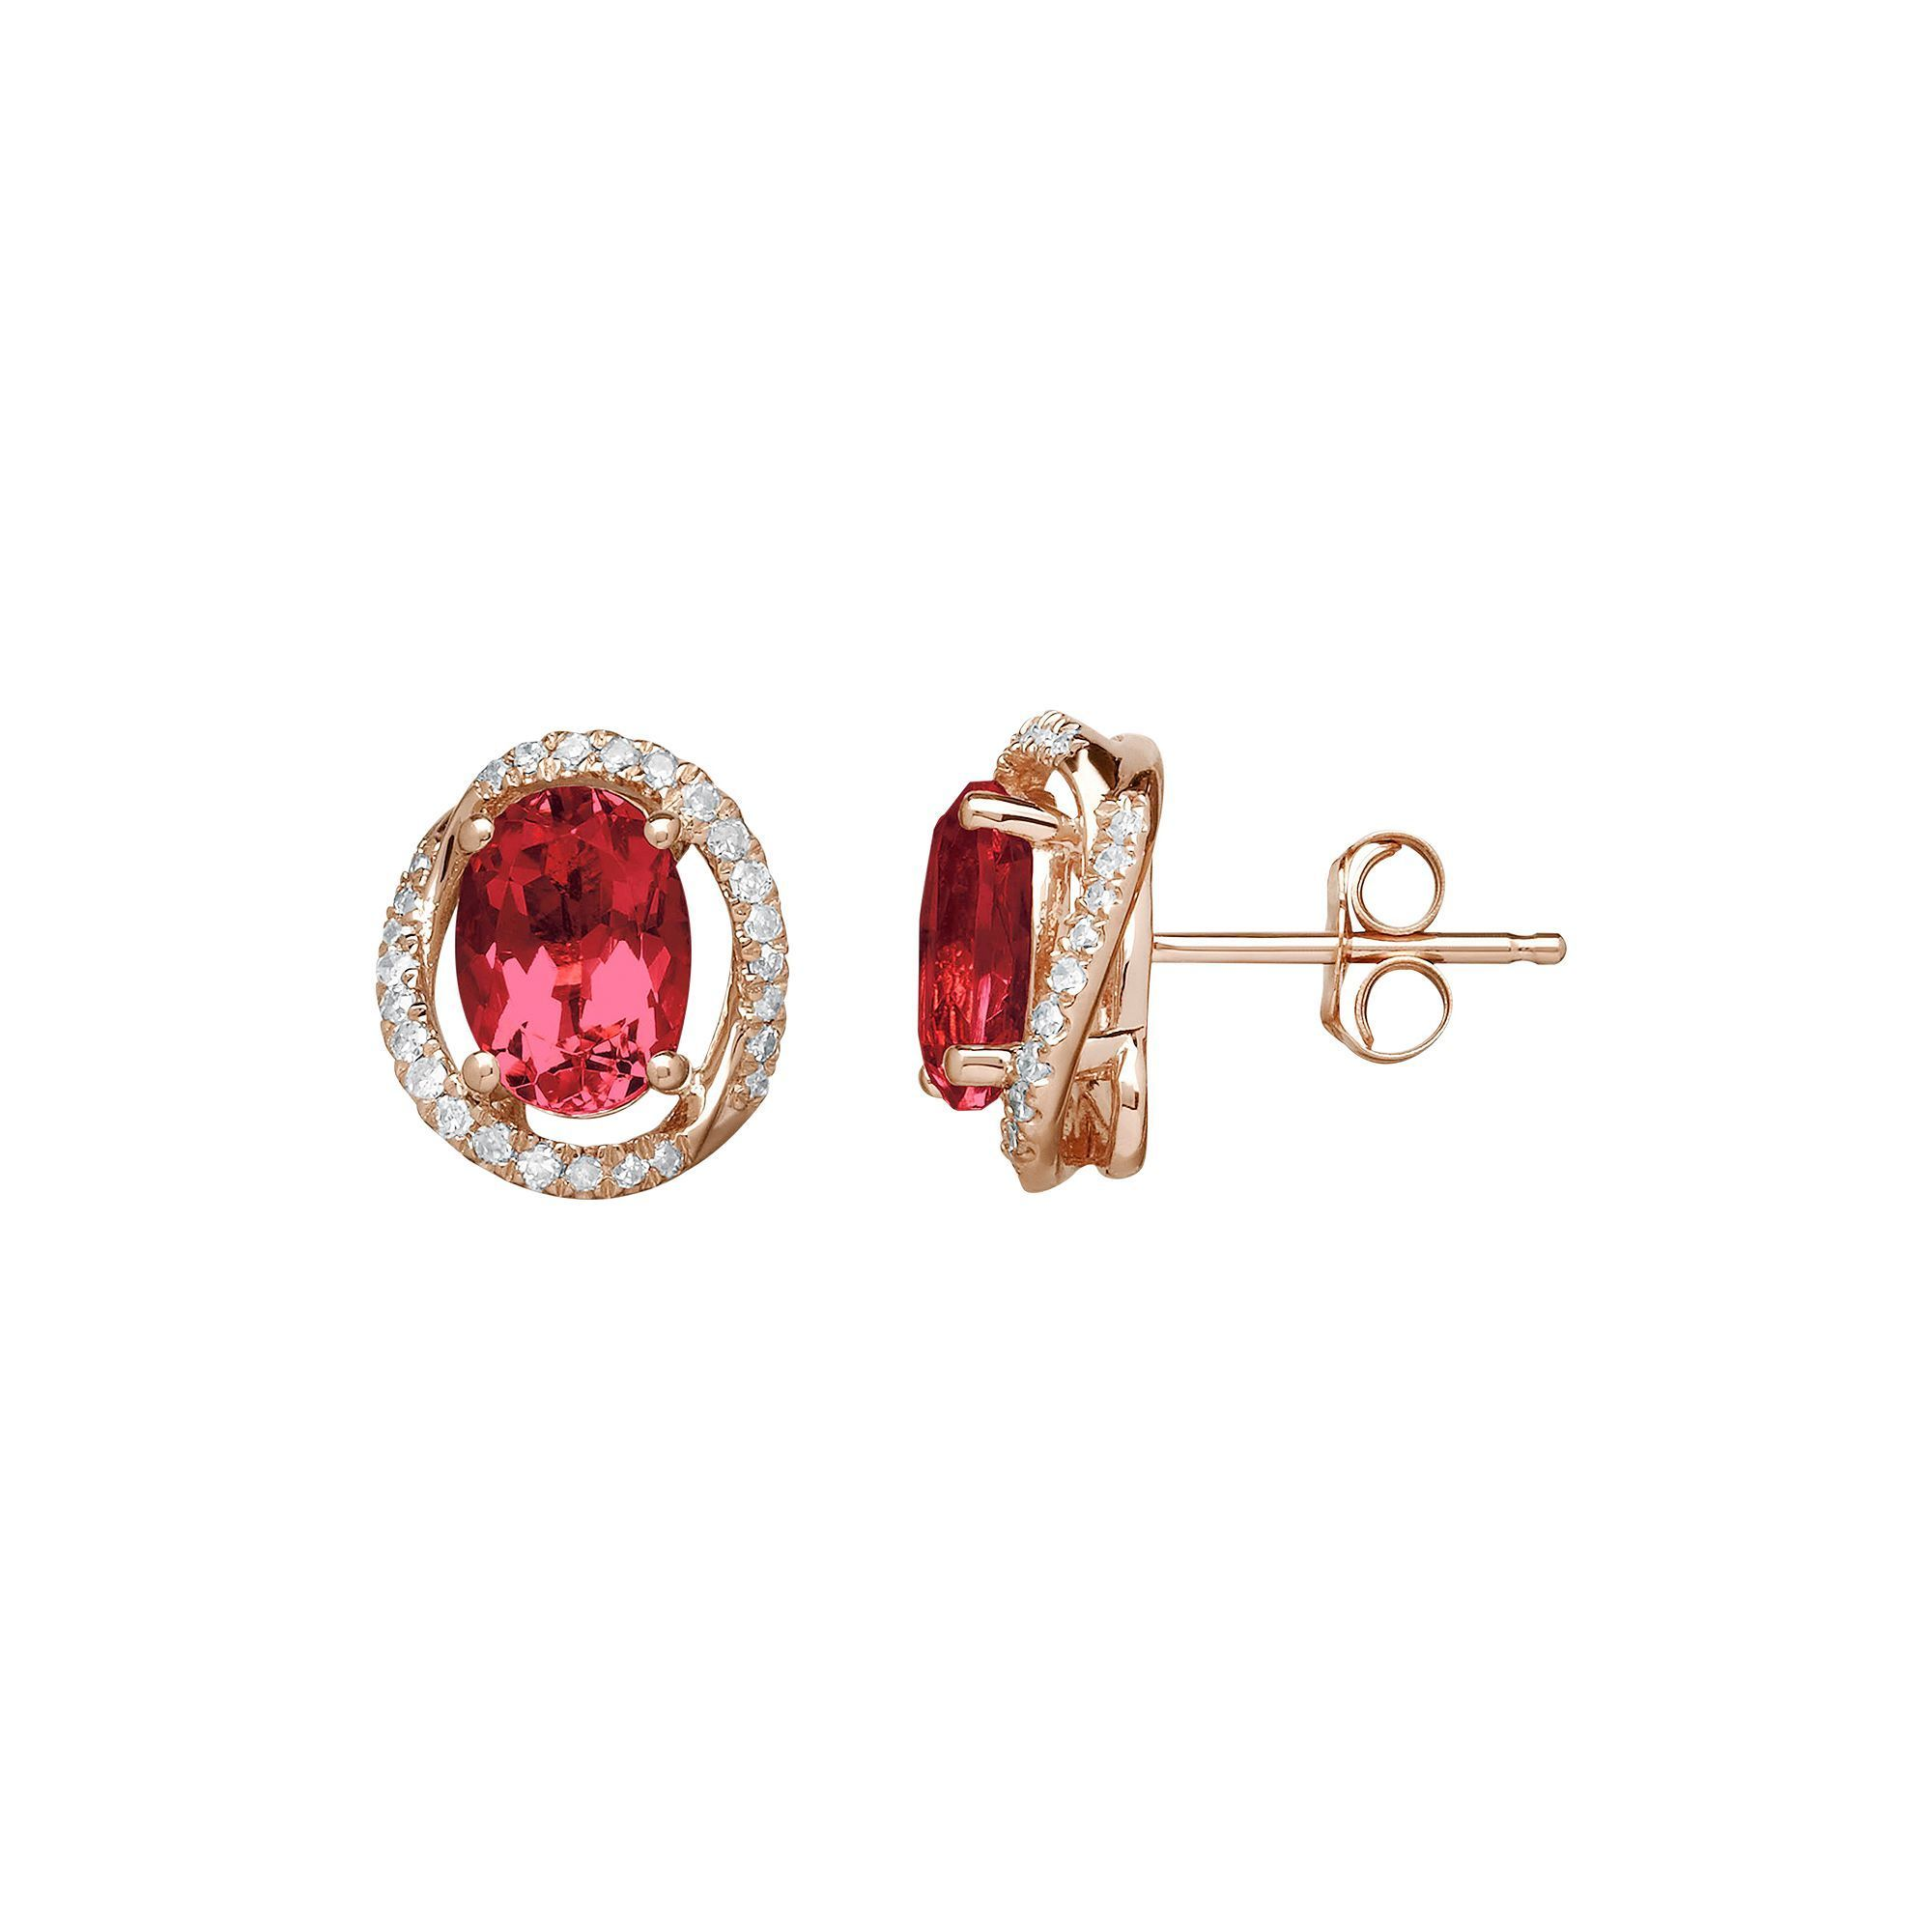 Ruby 1 8 Carat T W Diamond 10k Rose Gold Halo Button Stud Earrings Ruby Earrings Studs Rose Gold Earrings Studs Stud Earrings